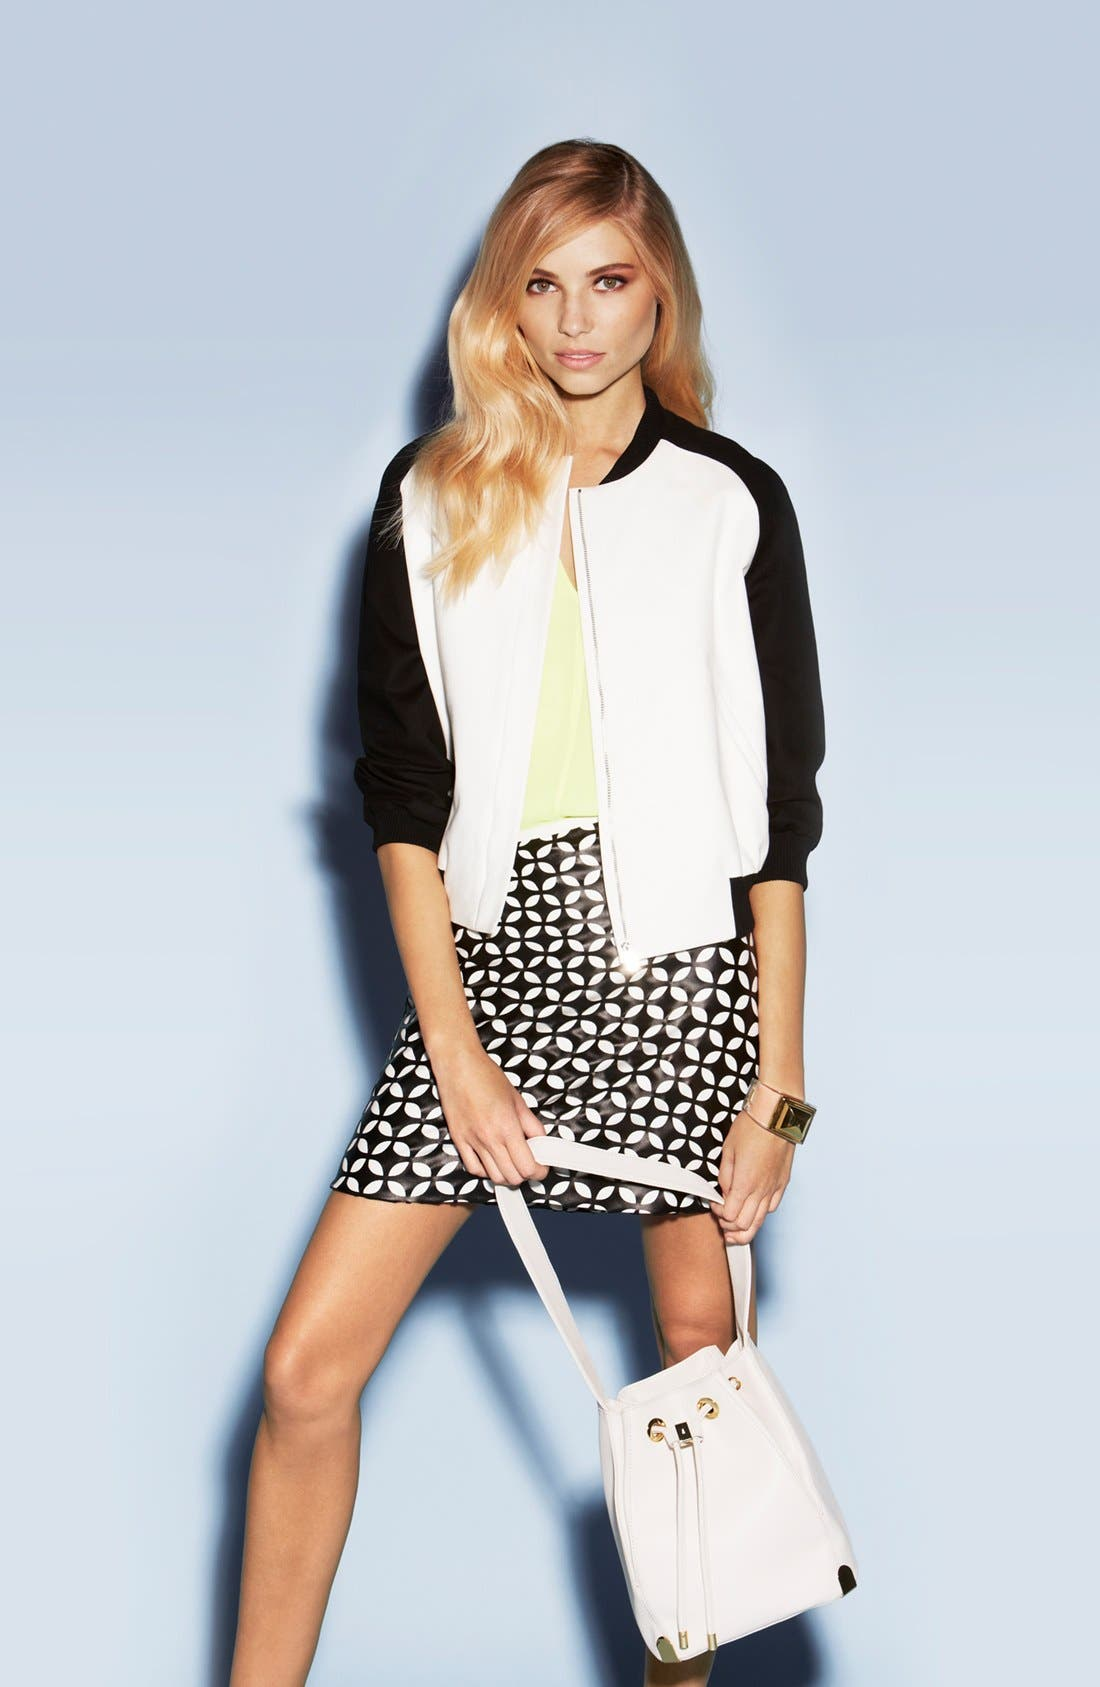 Main Image - Vince Camuto Jacket, Blouse, Skirt & Tote